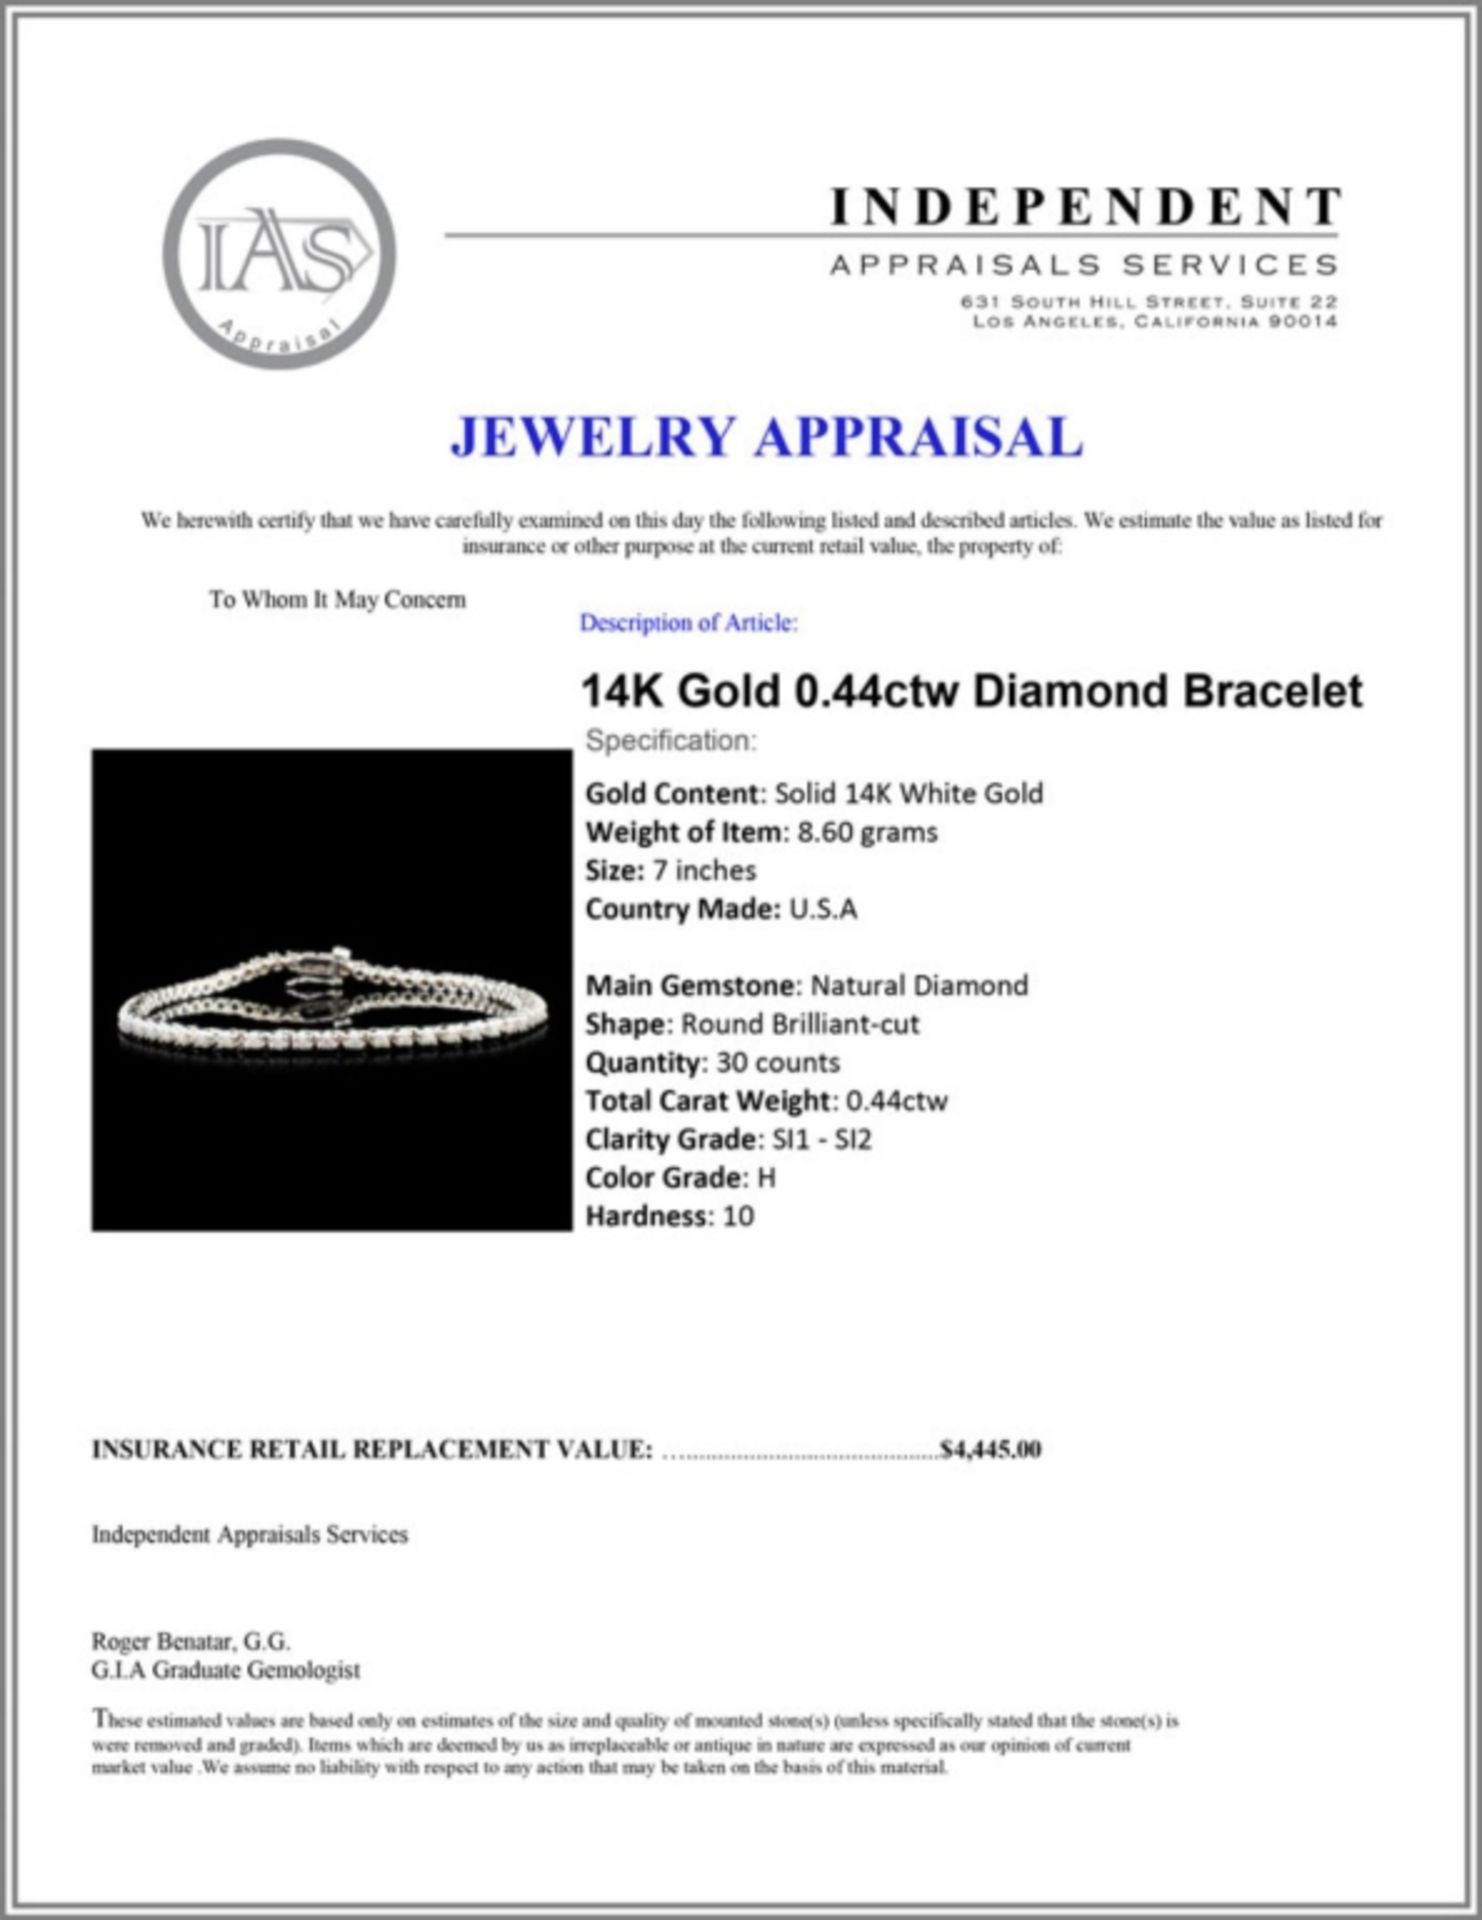 14K Gold 0.44ctw Diamond Bracelet - Image 4 of 4